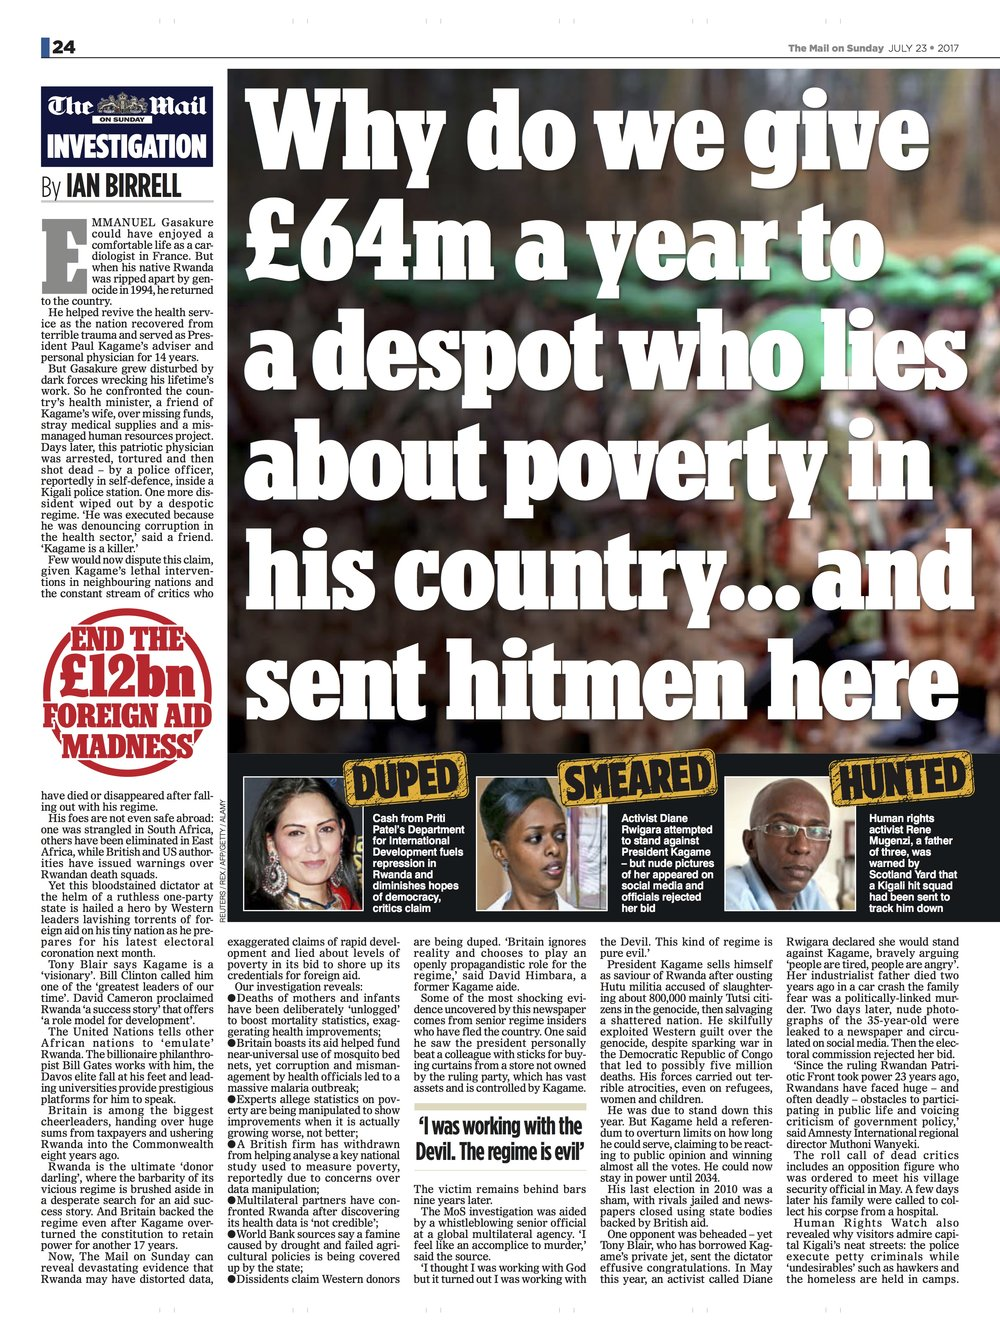 Priti Patel / Mail on Sunday